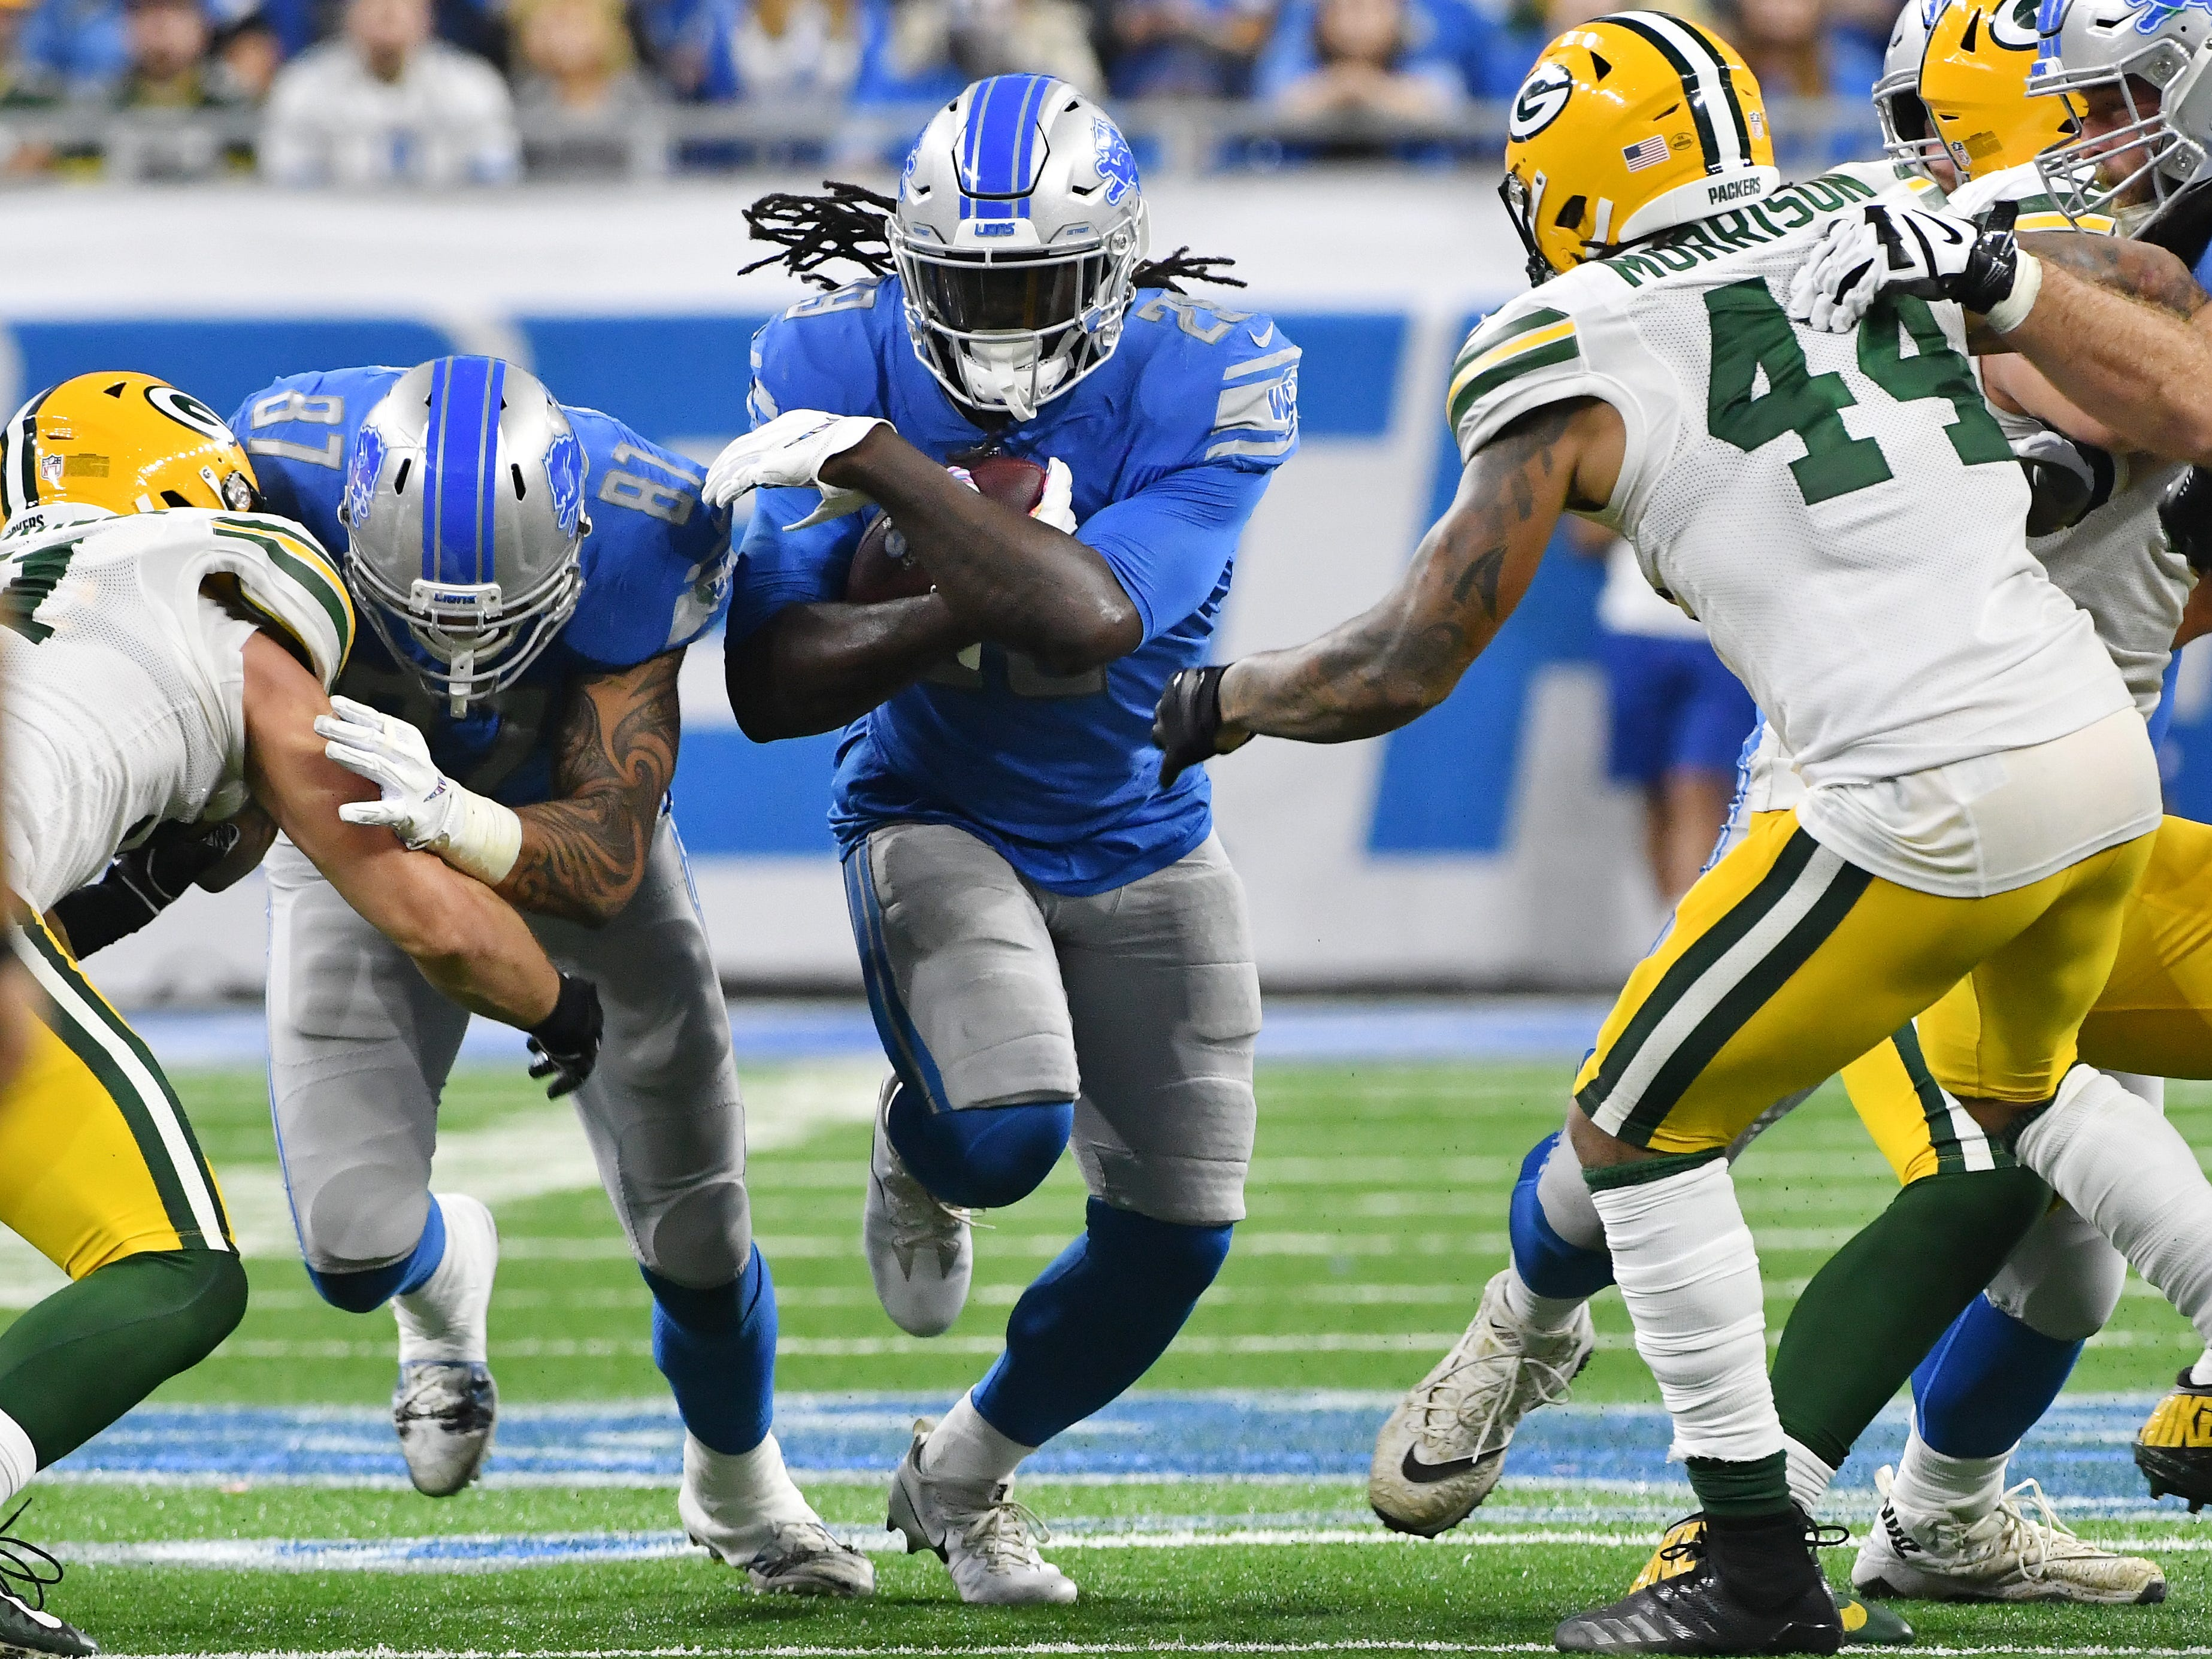 Lions running back LeGarrette Blount finds a whole in the Packers defensive line in the fourth quarter.